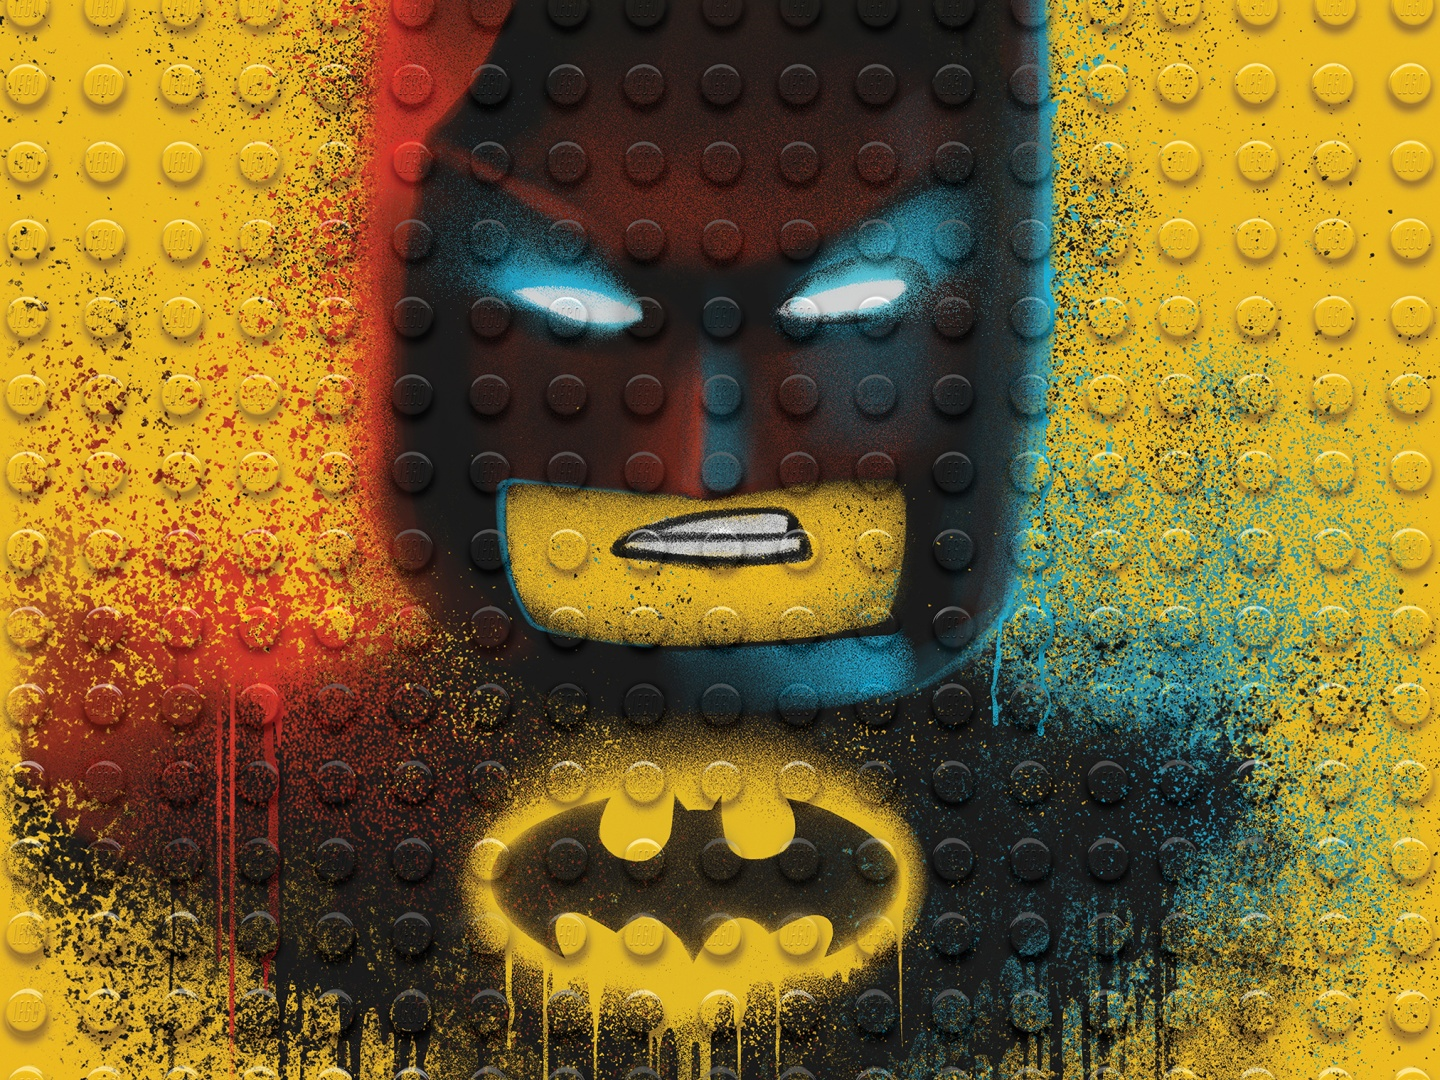 The LEGO Batman Movie - Graffiti Wild Postings | Batman Thumbnail